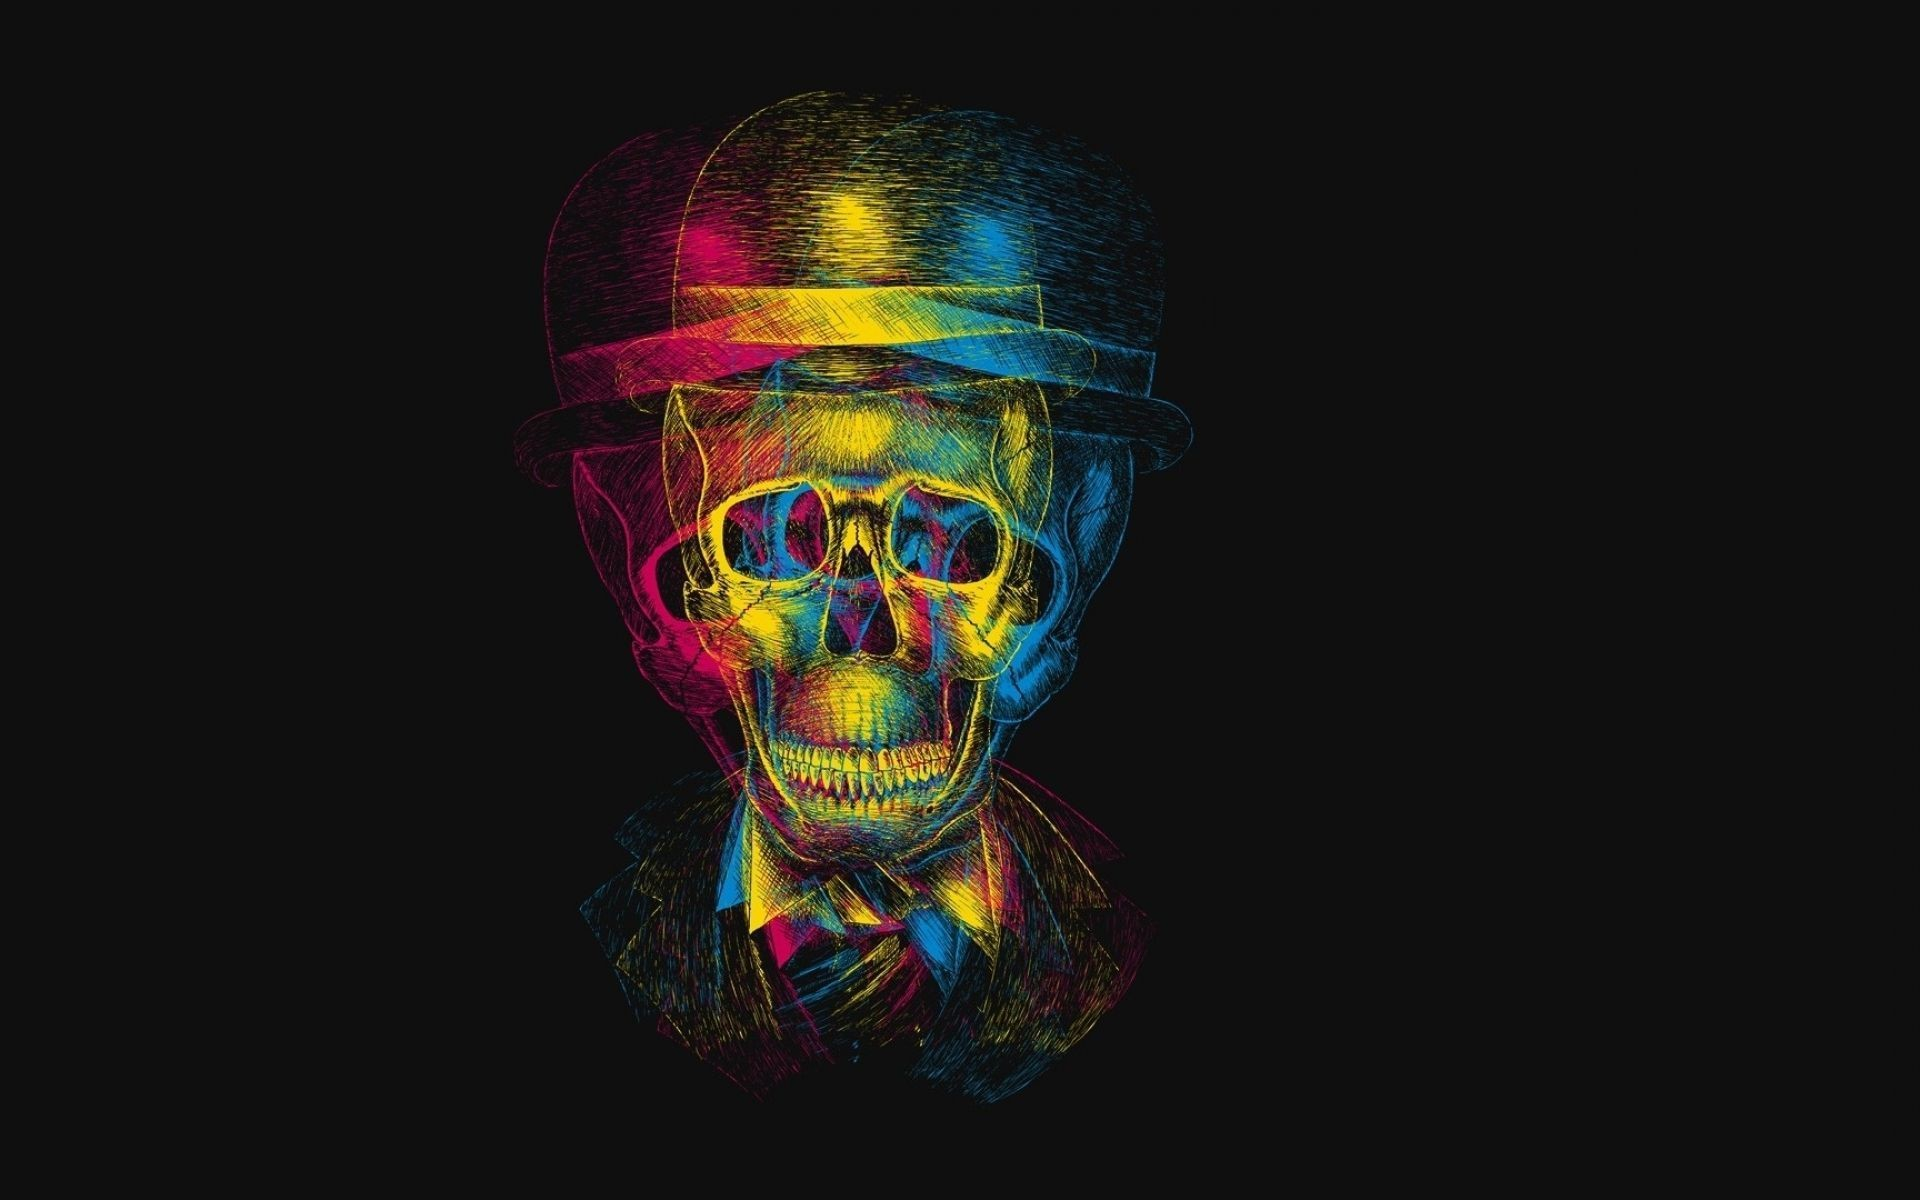 3d Anaglyph Wallpaper Desktop Abstract Skull Wallpaper 73 Images